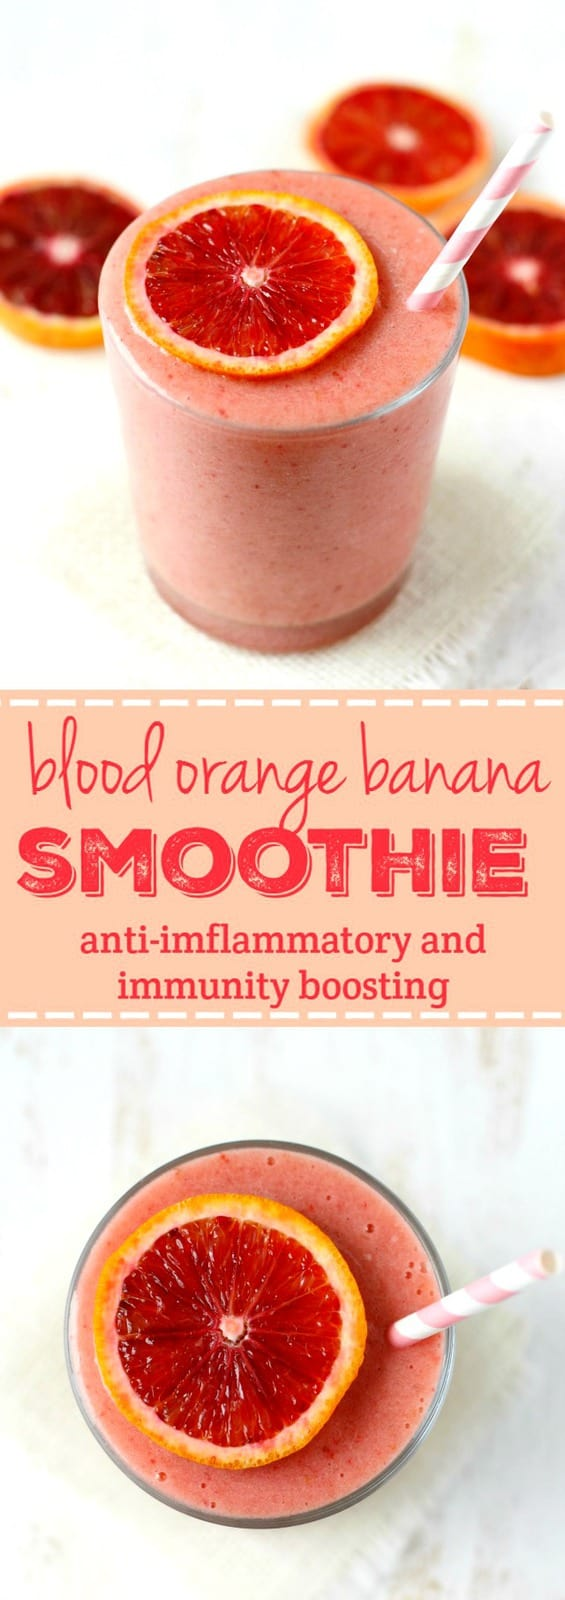 Blood oranges are full of antioxidants and make this smoothie delicious!